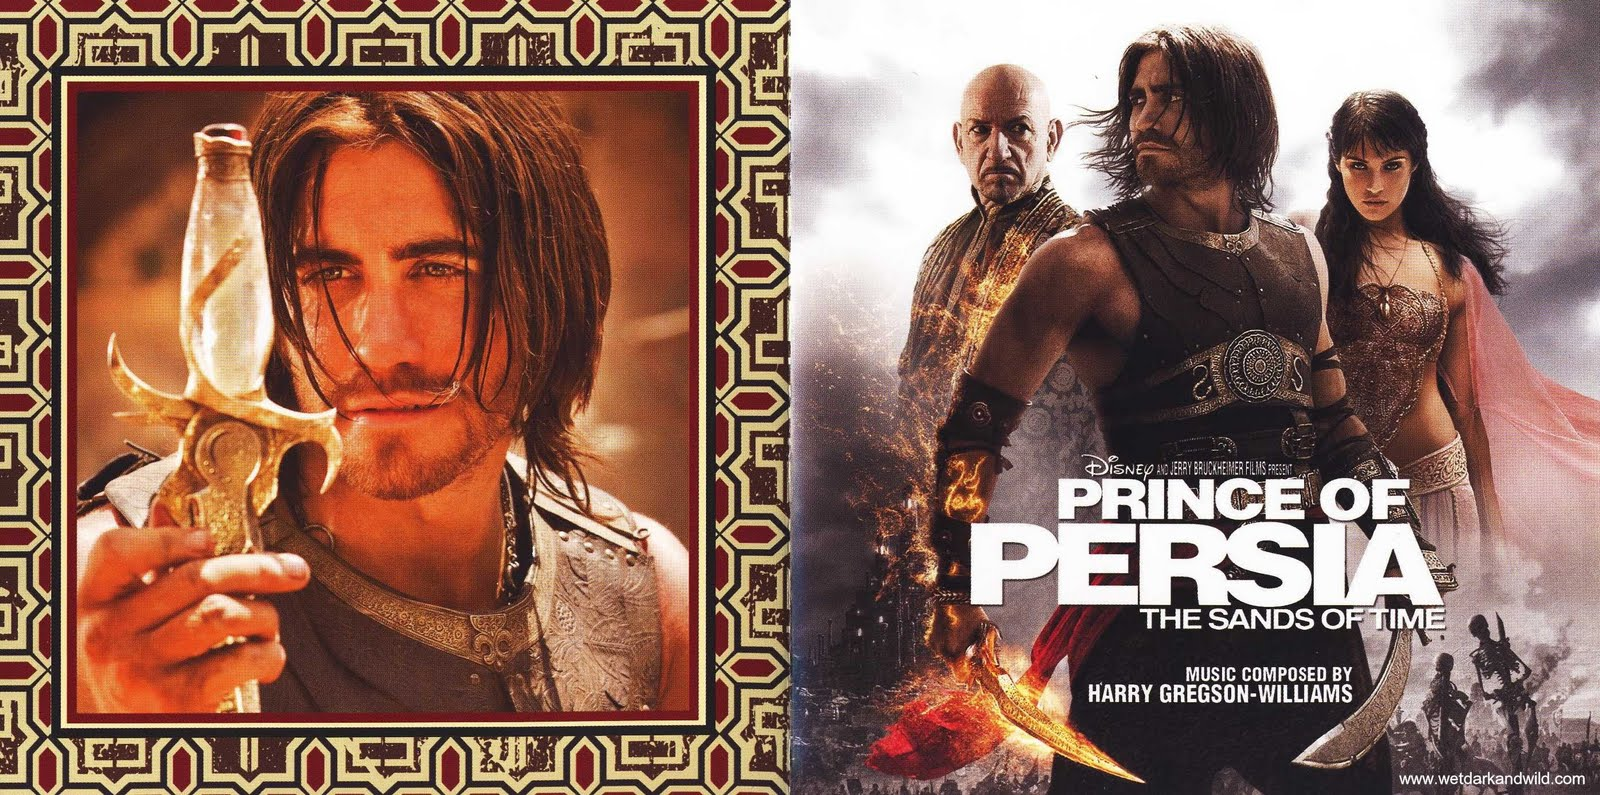 Weirdland Jake Gyllenhaal Nominee To Teen Choice Awards For Prince Of Persia